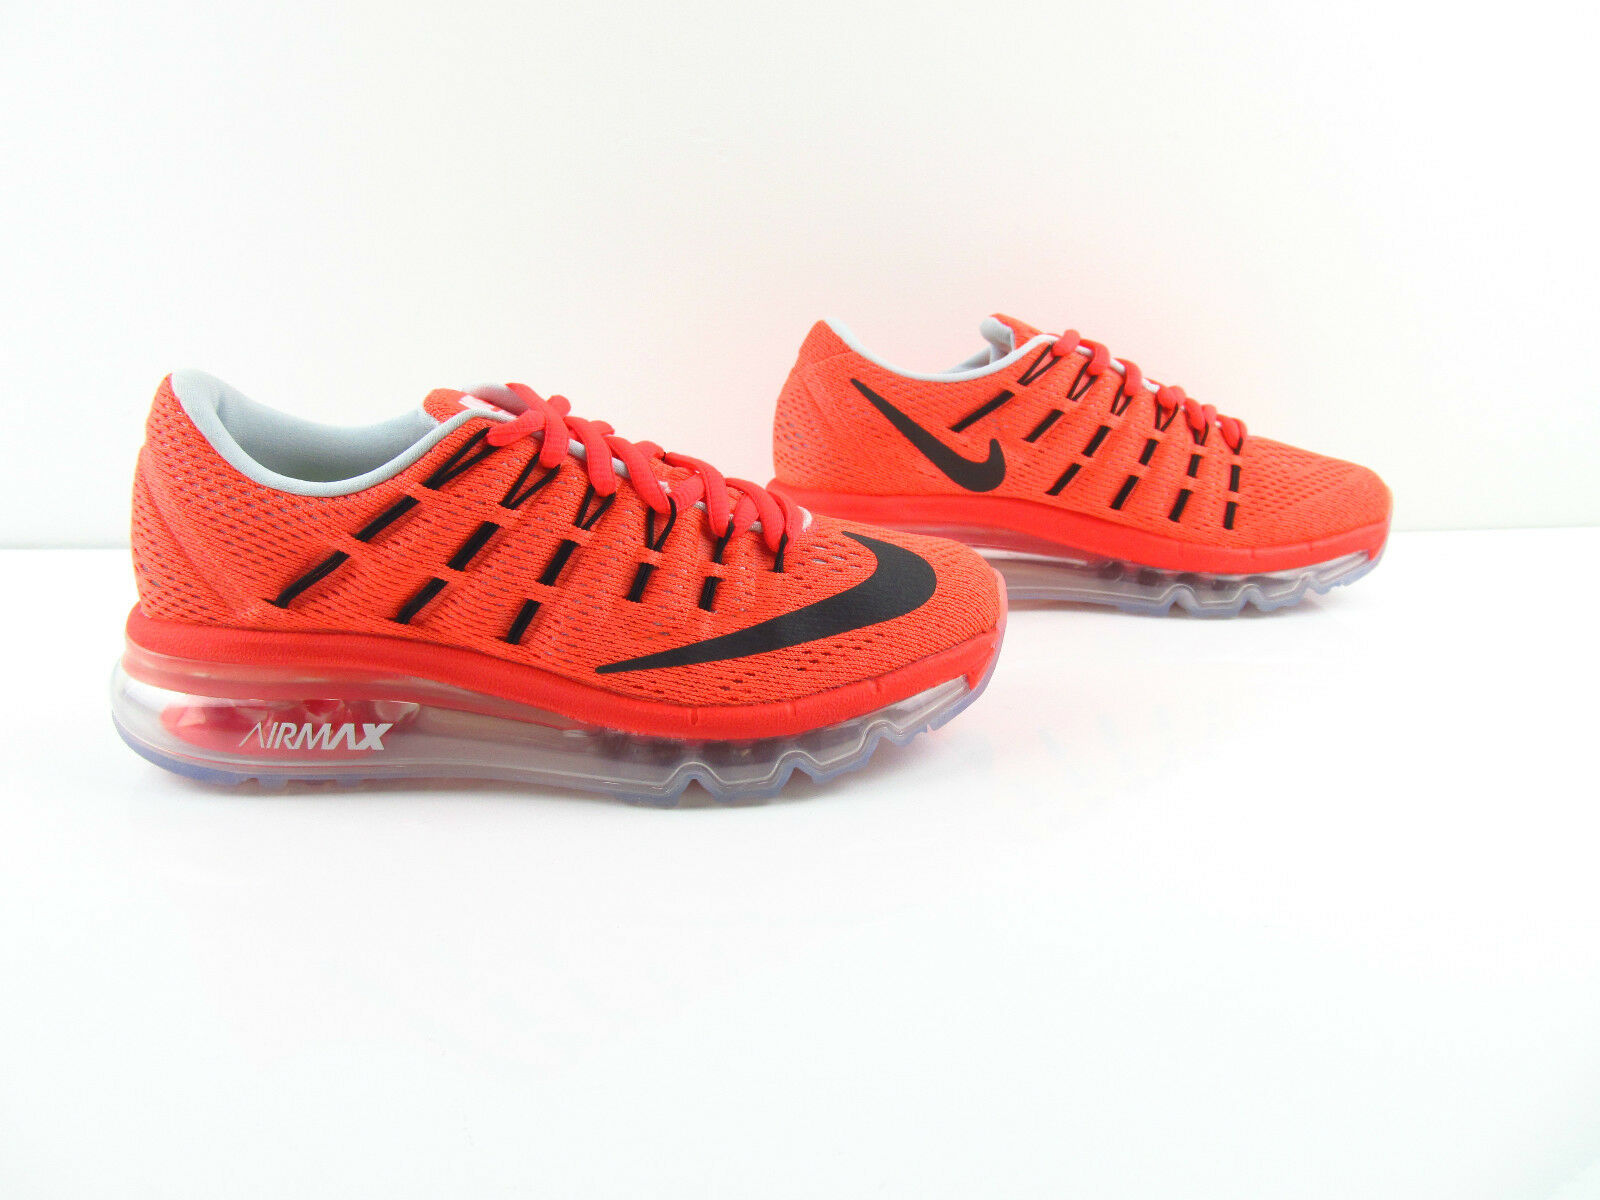 Nike Air Max 2016 Bright Crimson Gym Red Volt Black New US_7.5 8 Eur 37.5 38